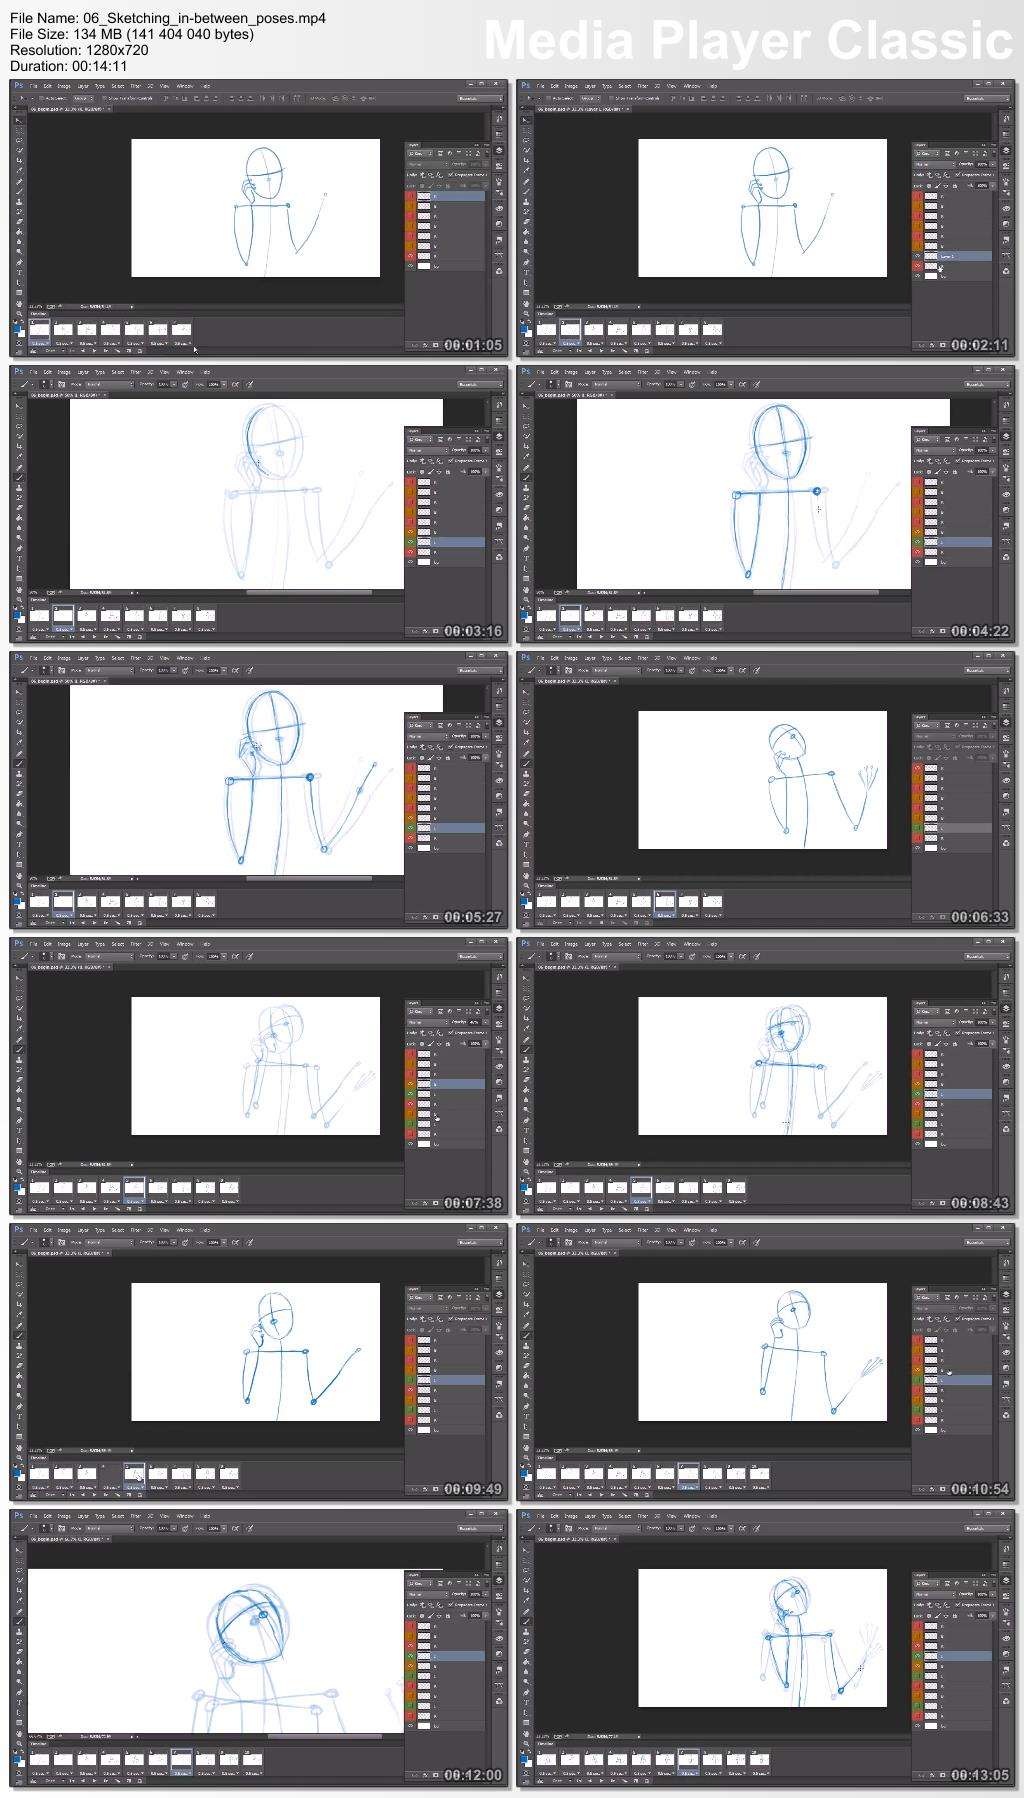 Dixxl Tuxxs - Traditional Animation Techniques in Photoshop